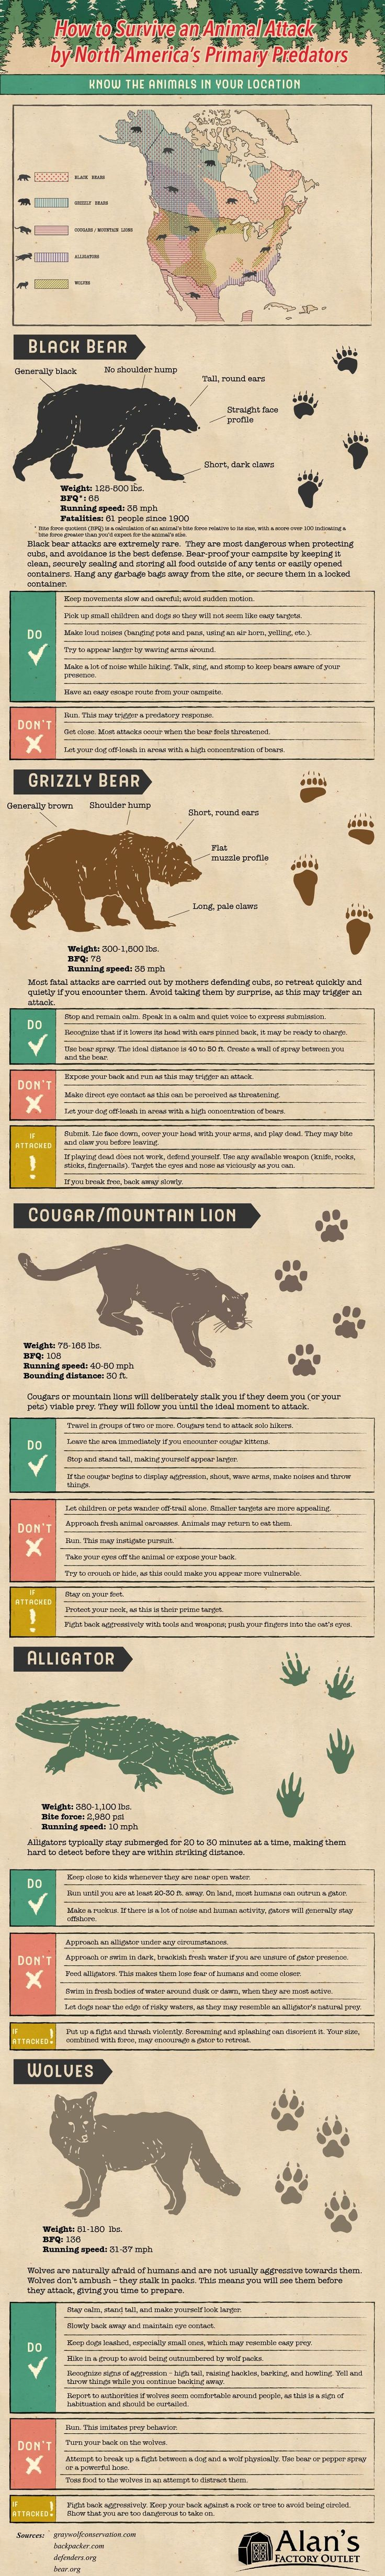 How To Face An Animal Attack In North America - Infographic